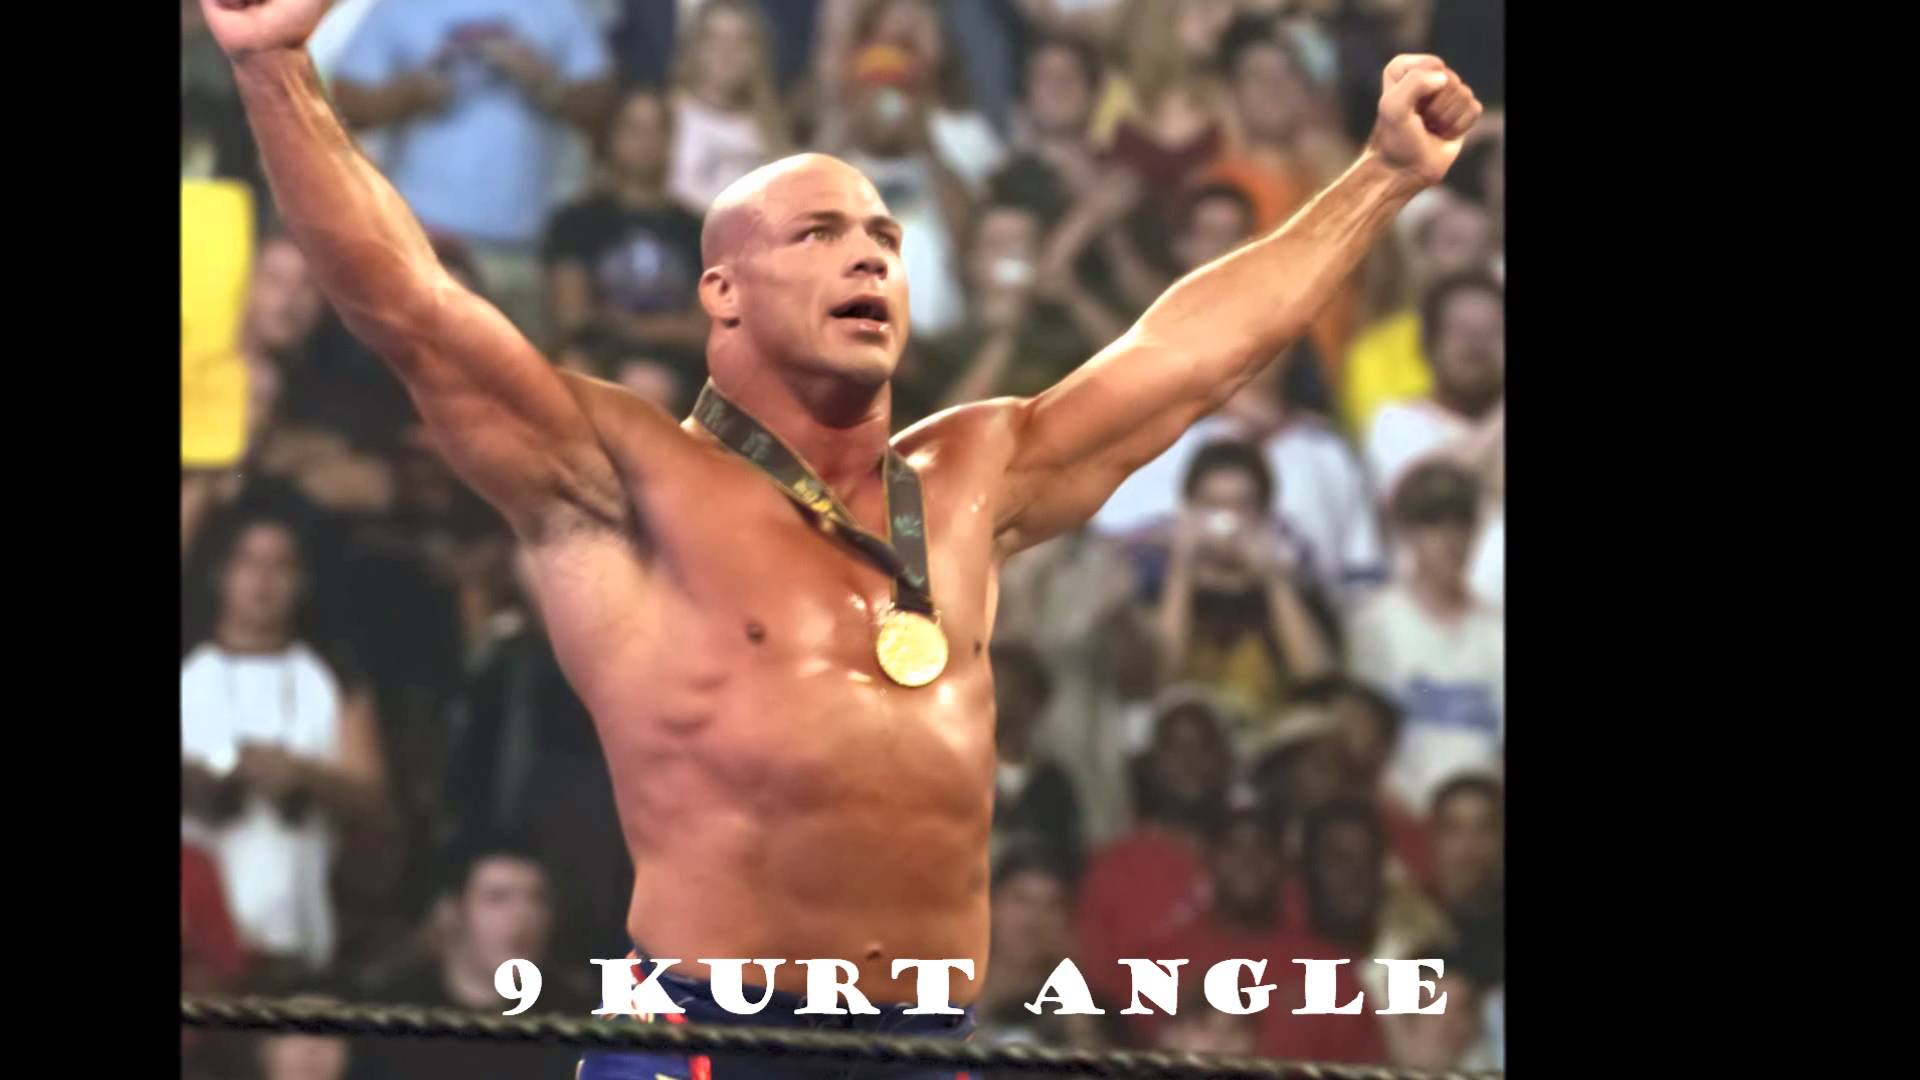 kurt angle hd wallpaper - Background Wallpapers for your Desktop ...